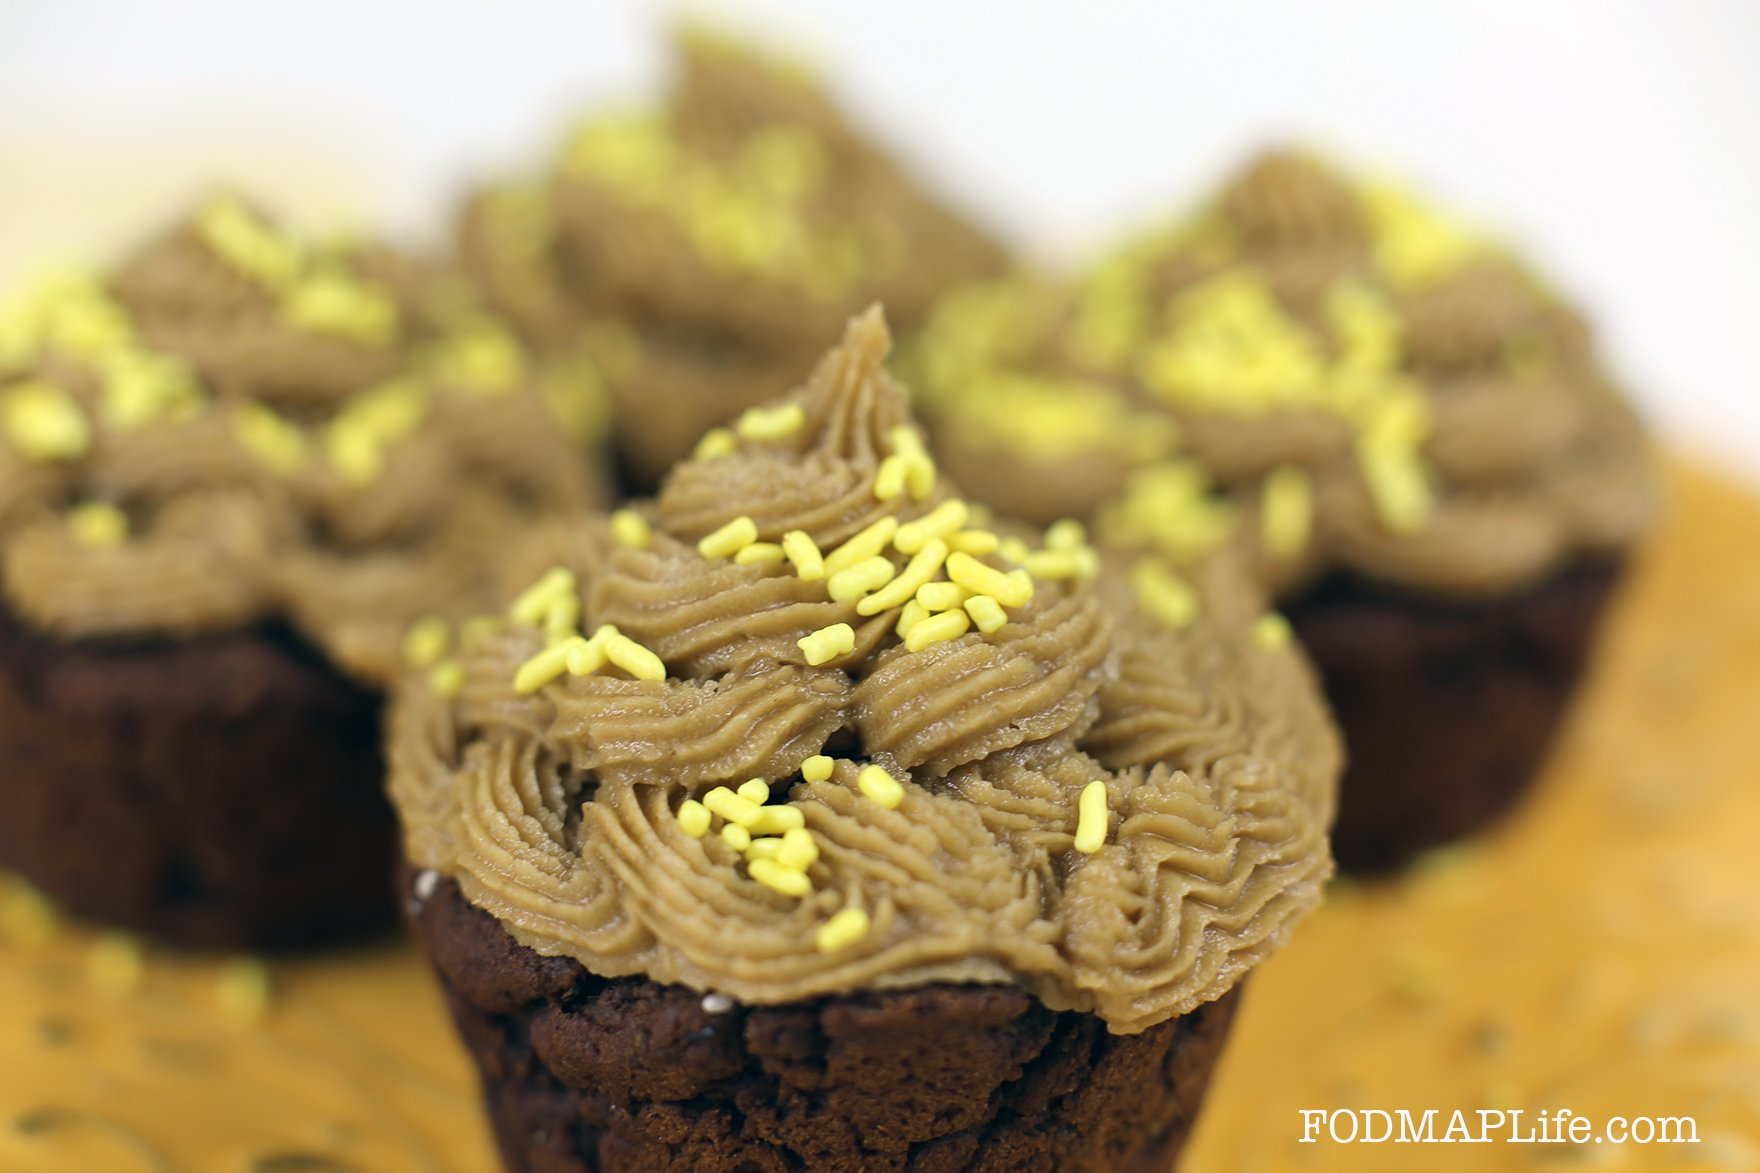 FODMAP Life Recipe Challenge: Chocolate Teff Chia Cupcakes, Low-FODMAP, Vegan, Nut-free